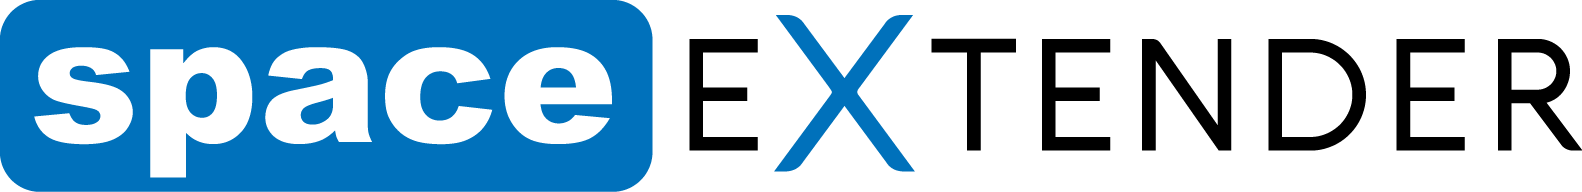 space-extender-logo-on-white.png